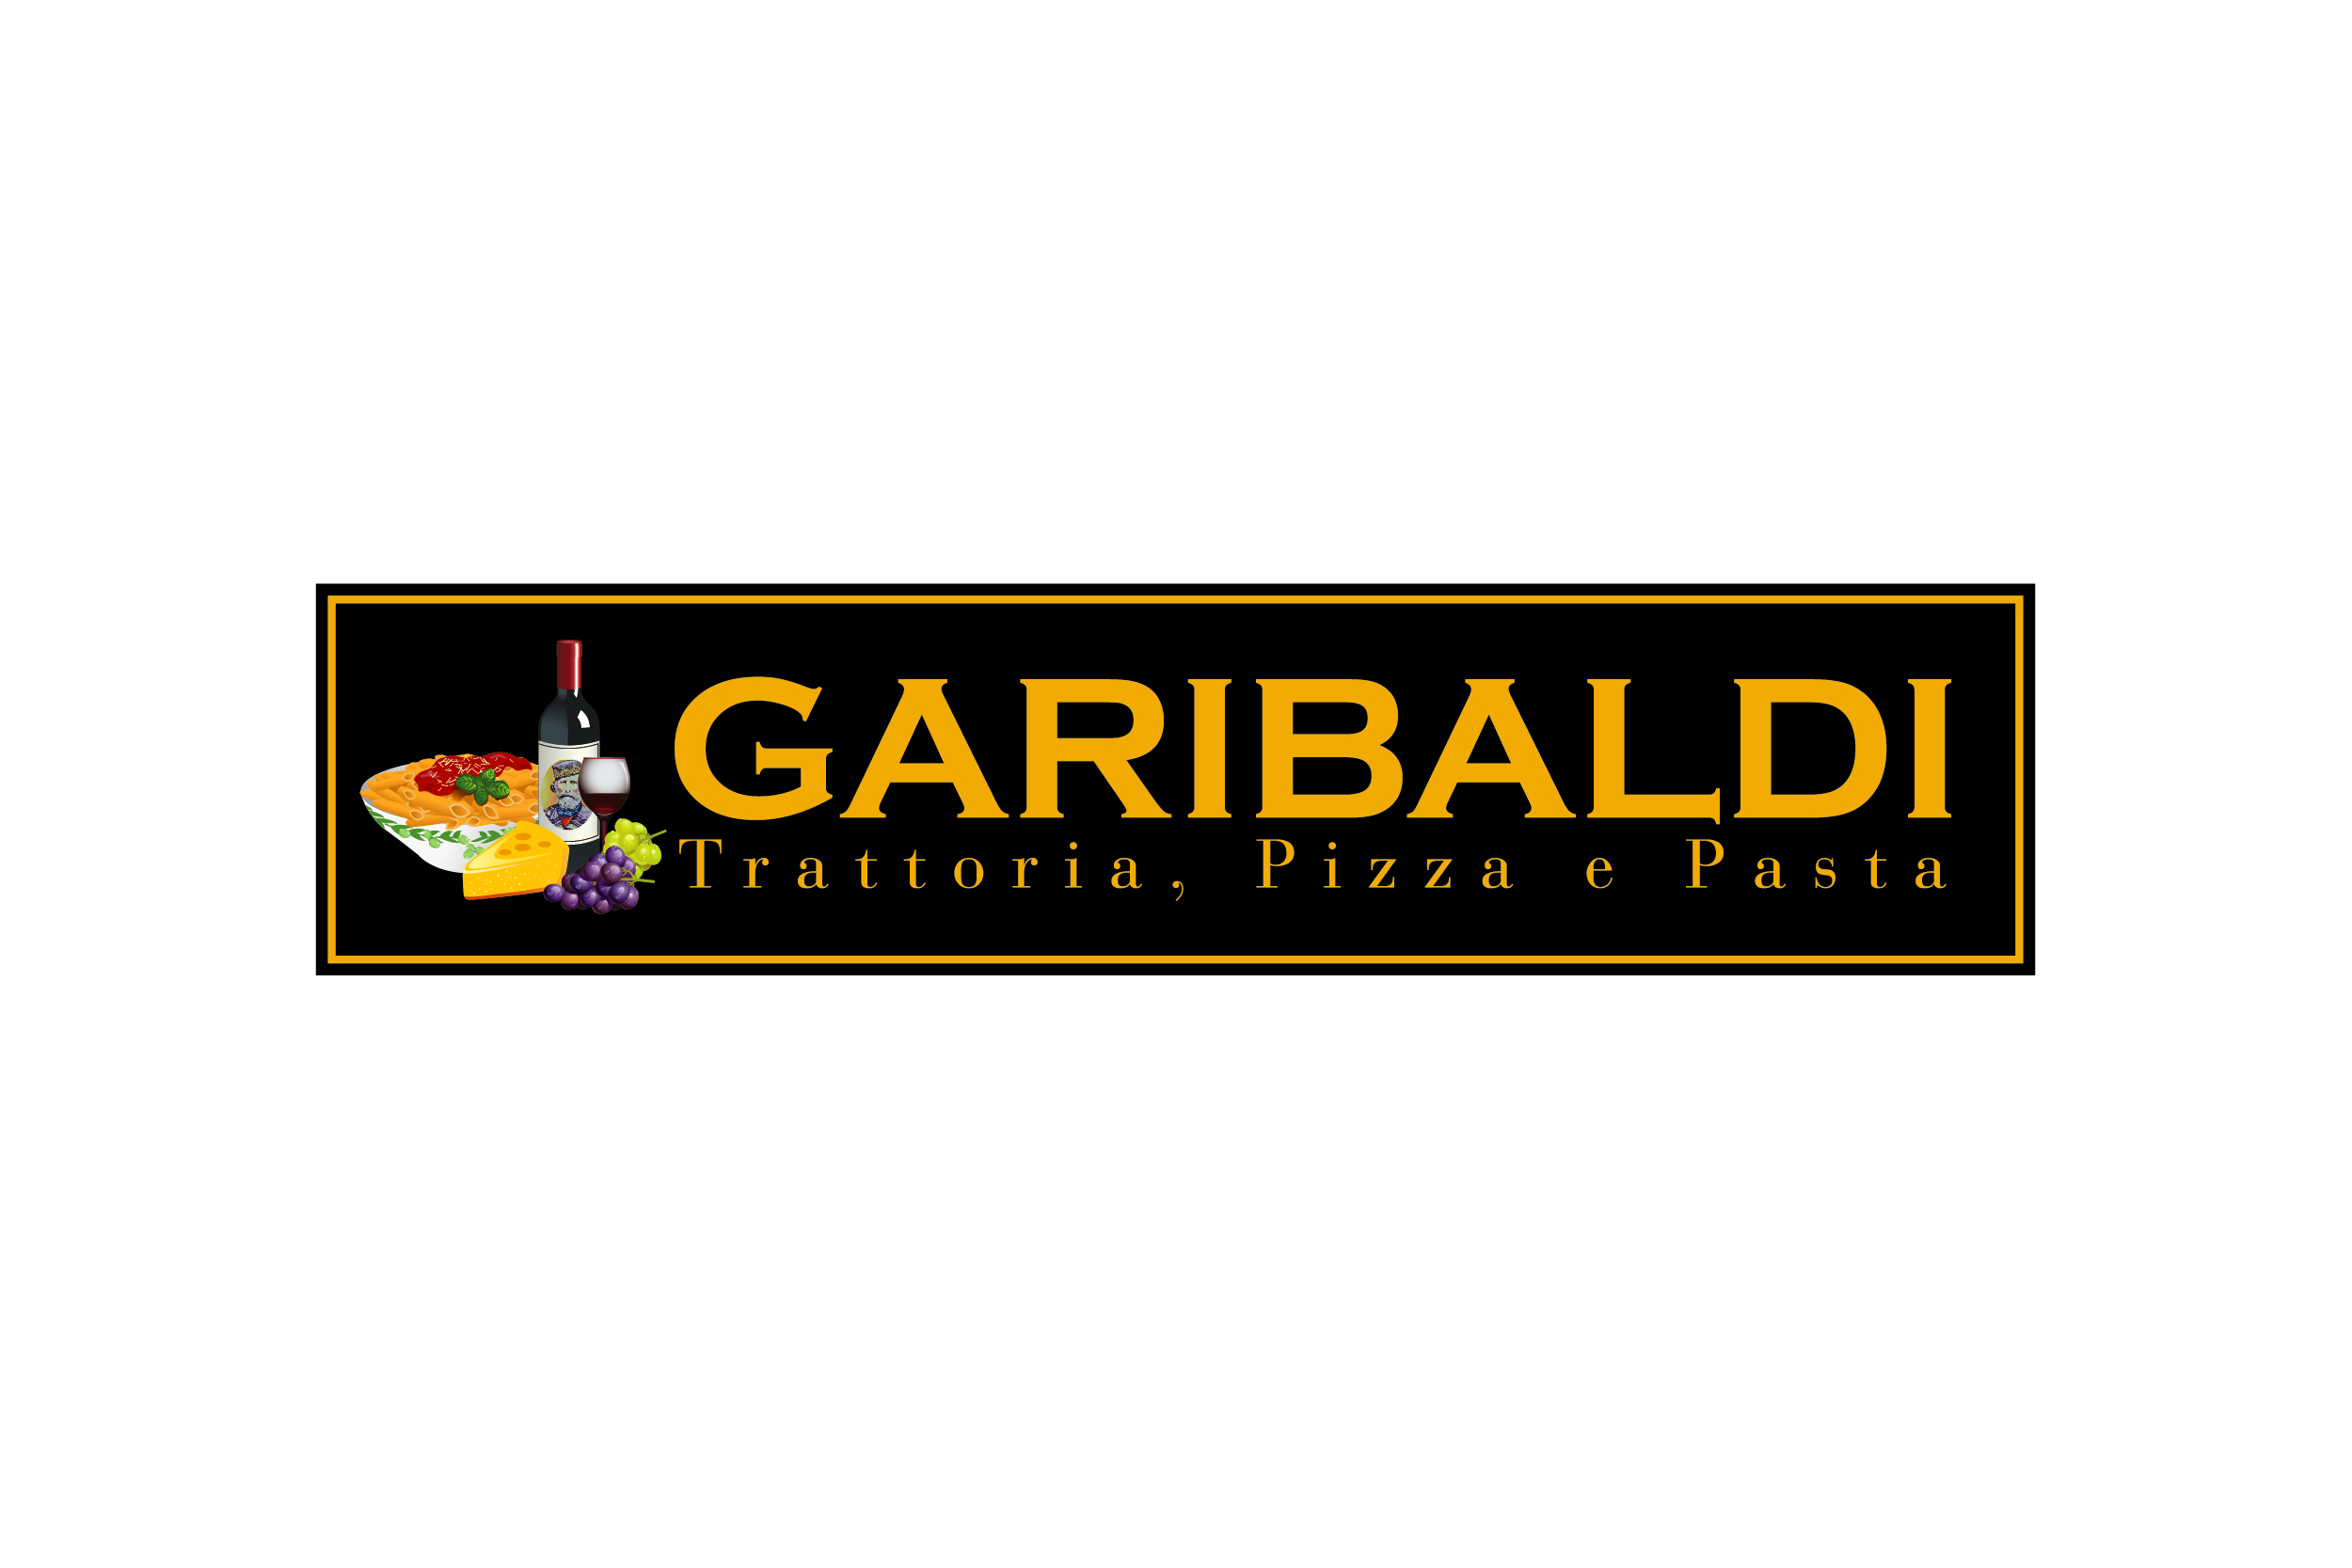 Garibaldi logo higher resolution.jpg